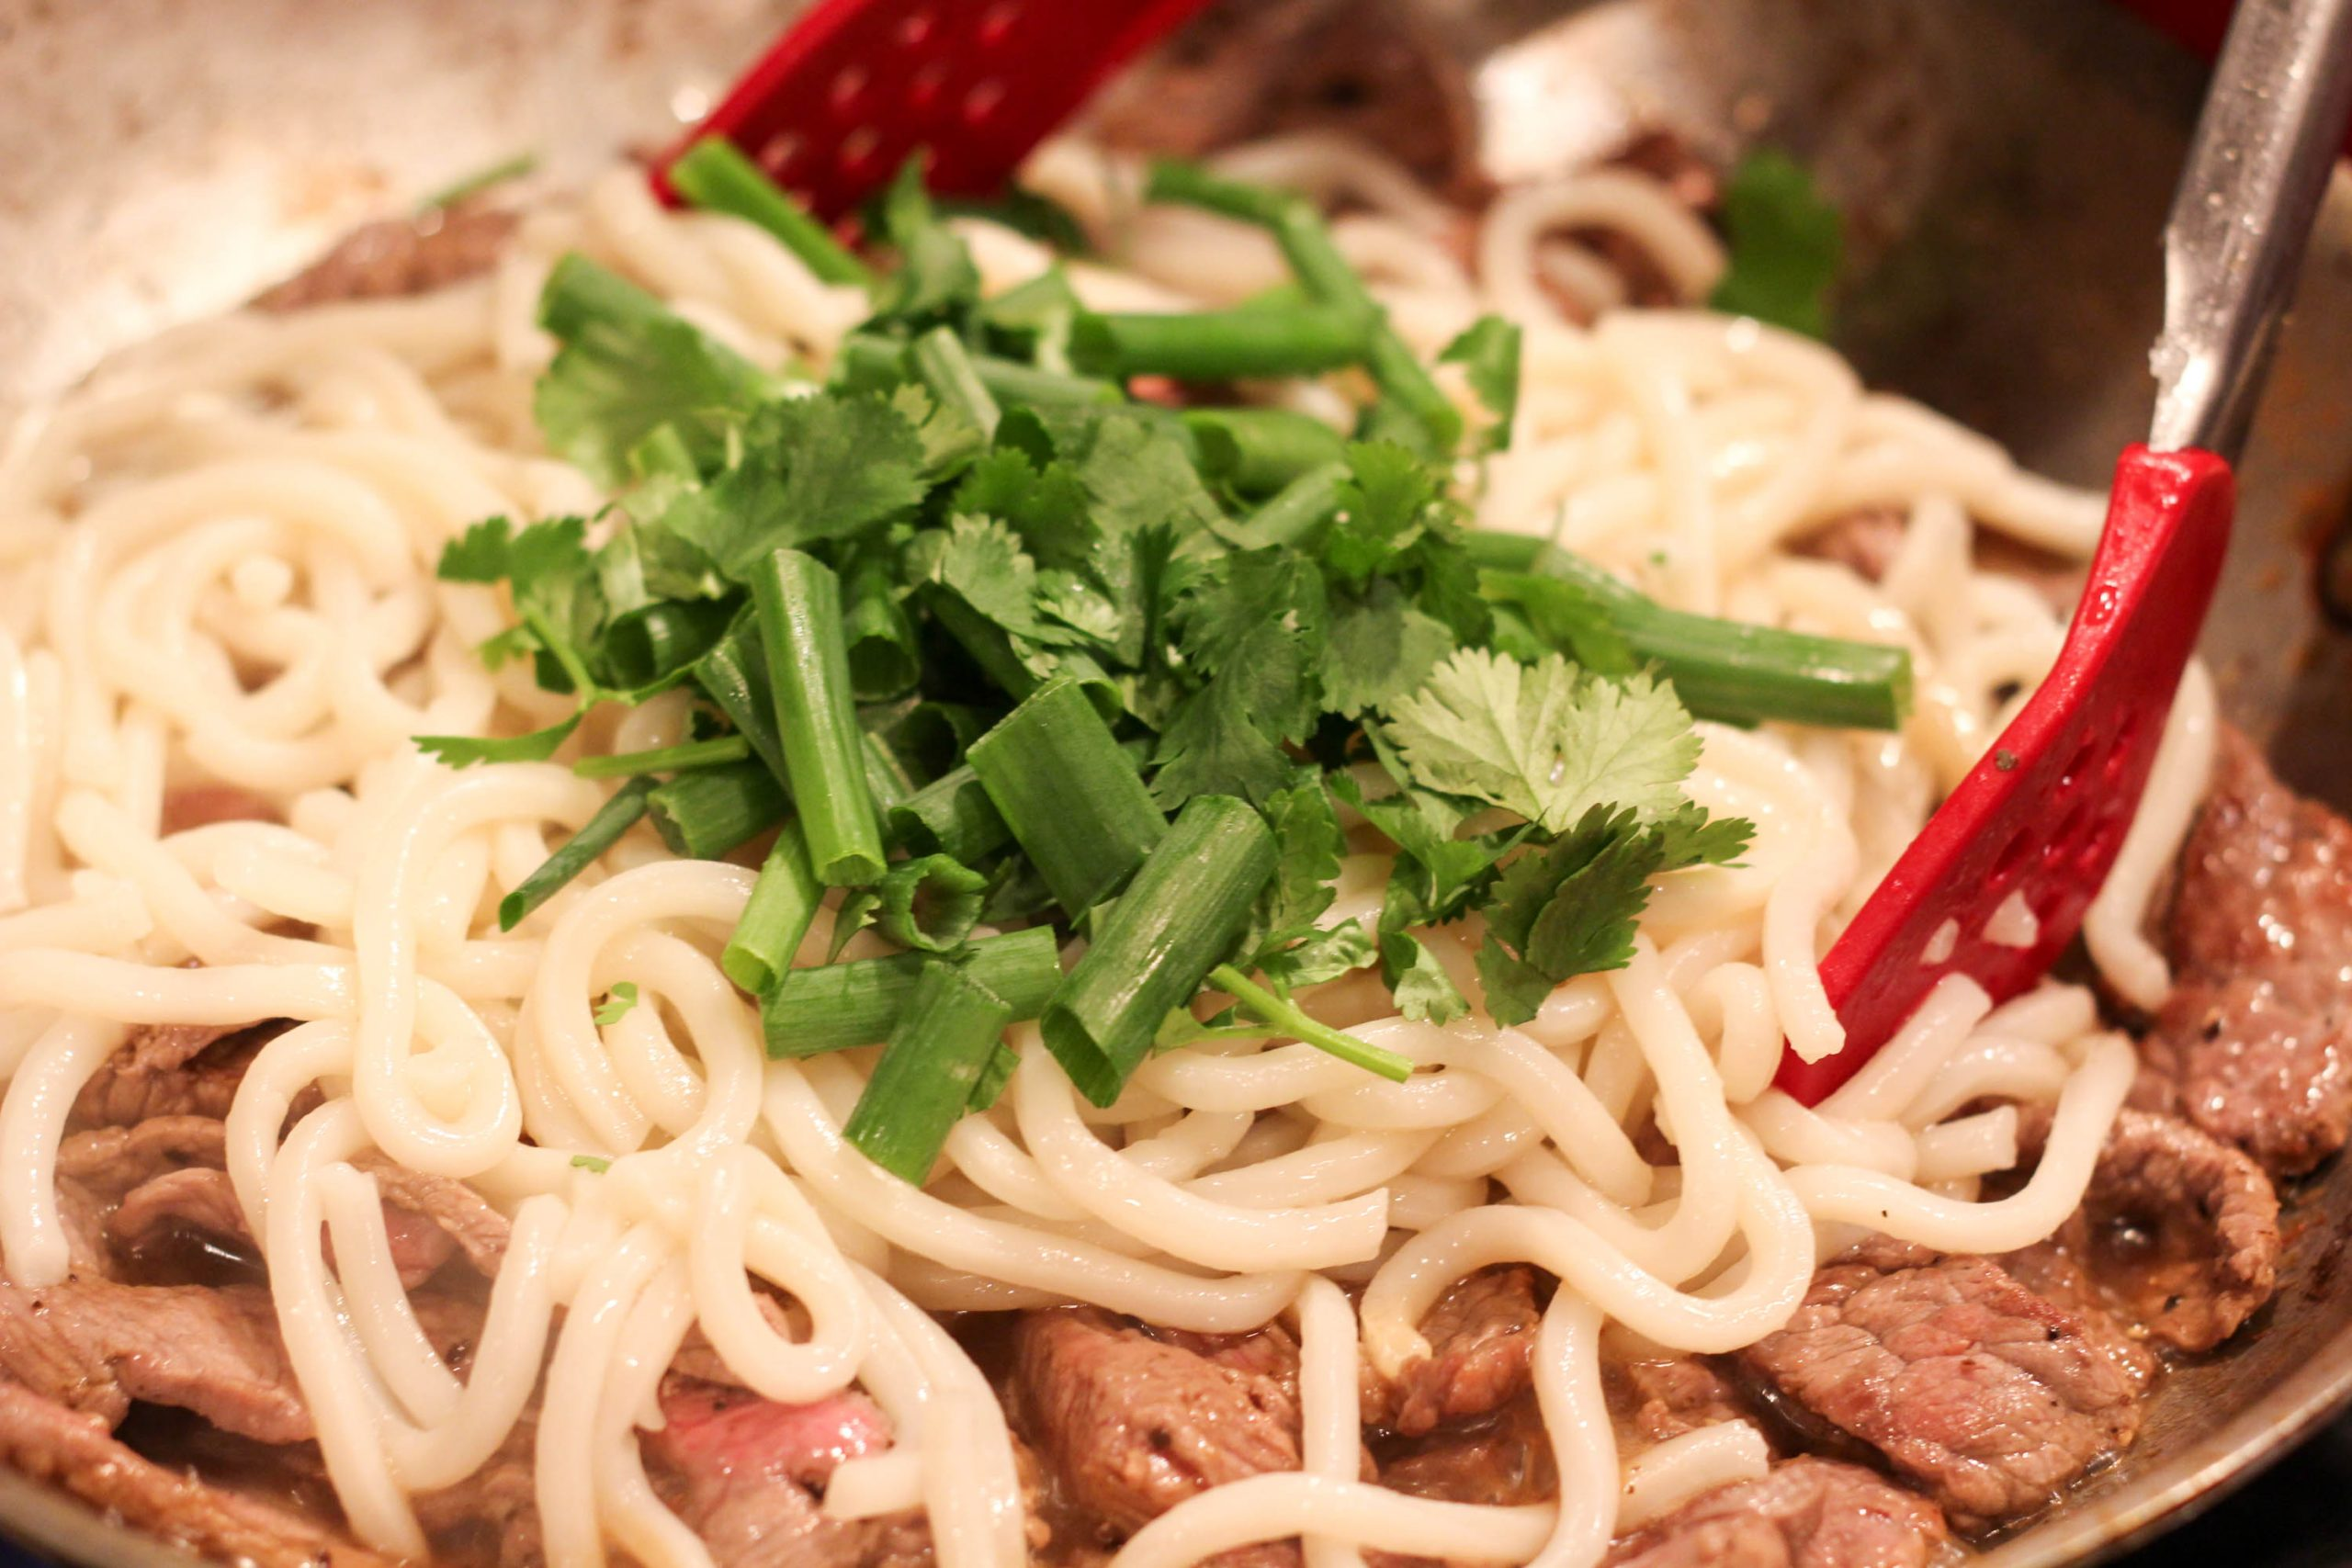 udon noodles with scallions and cilantro